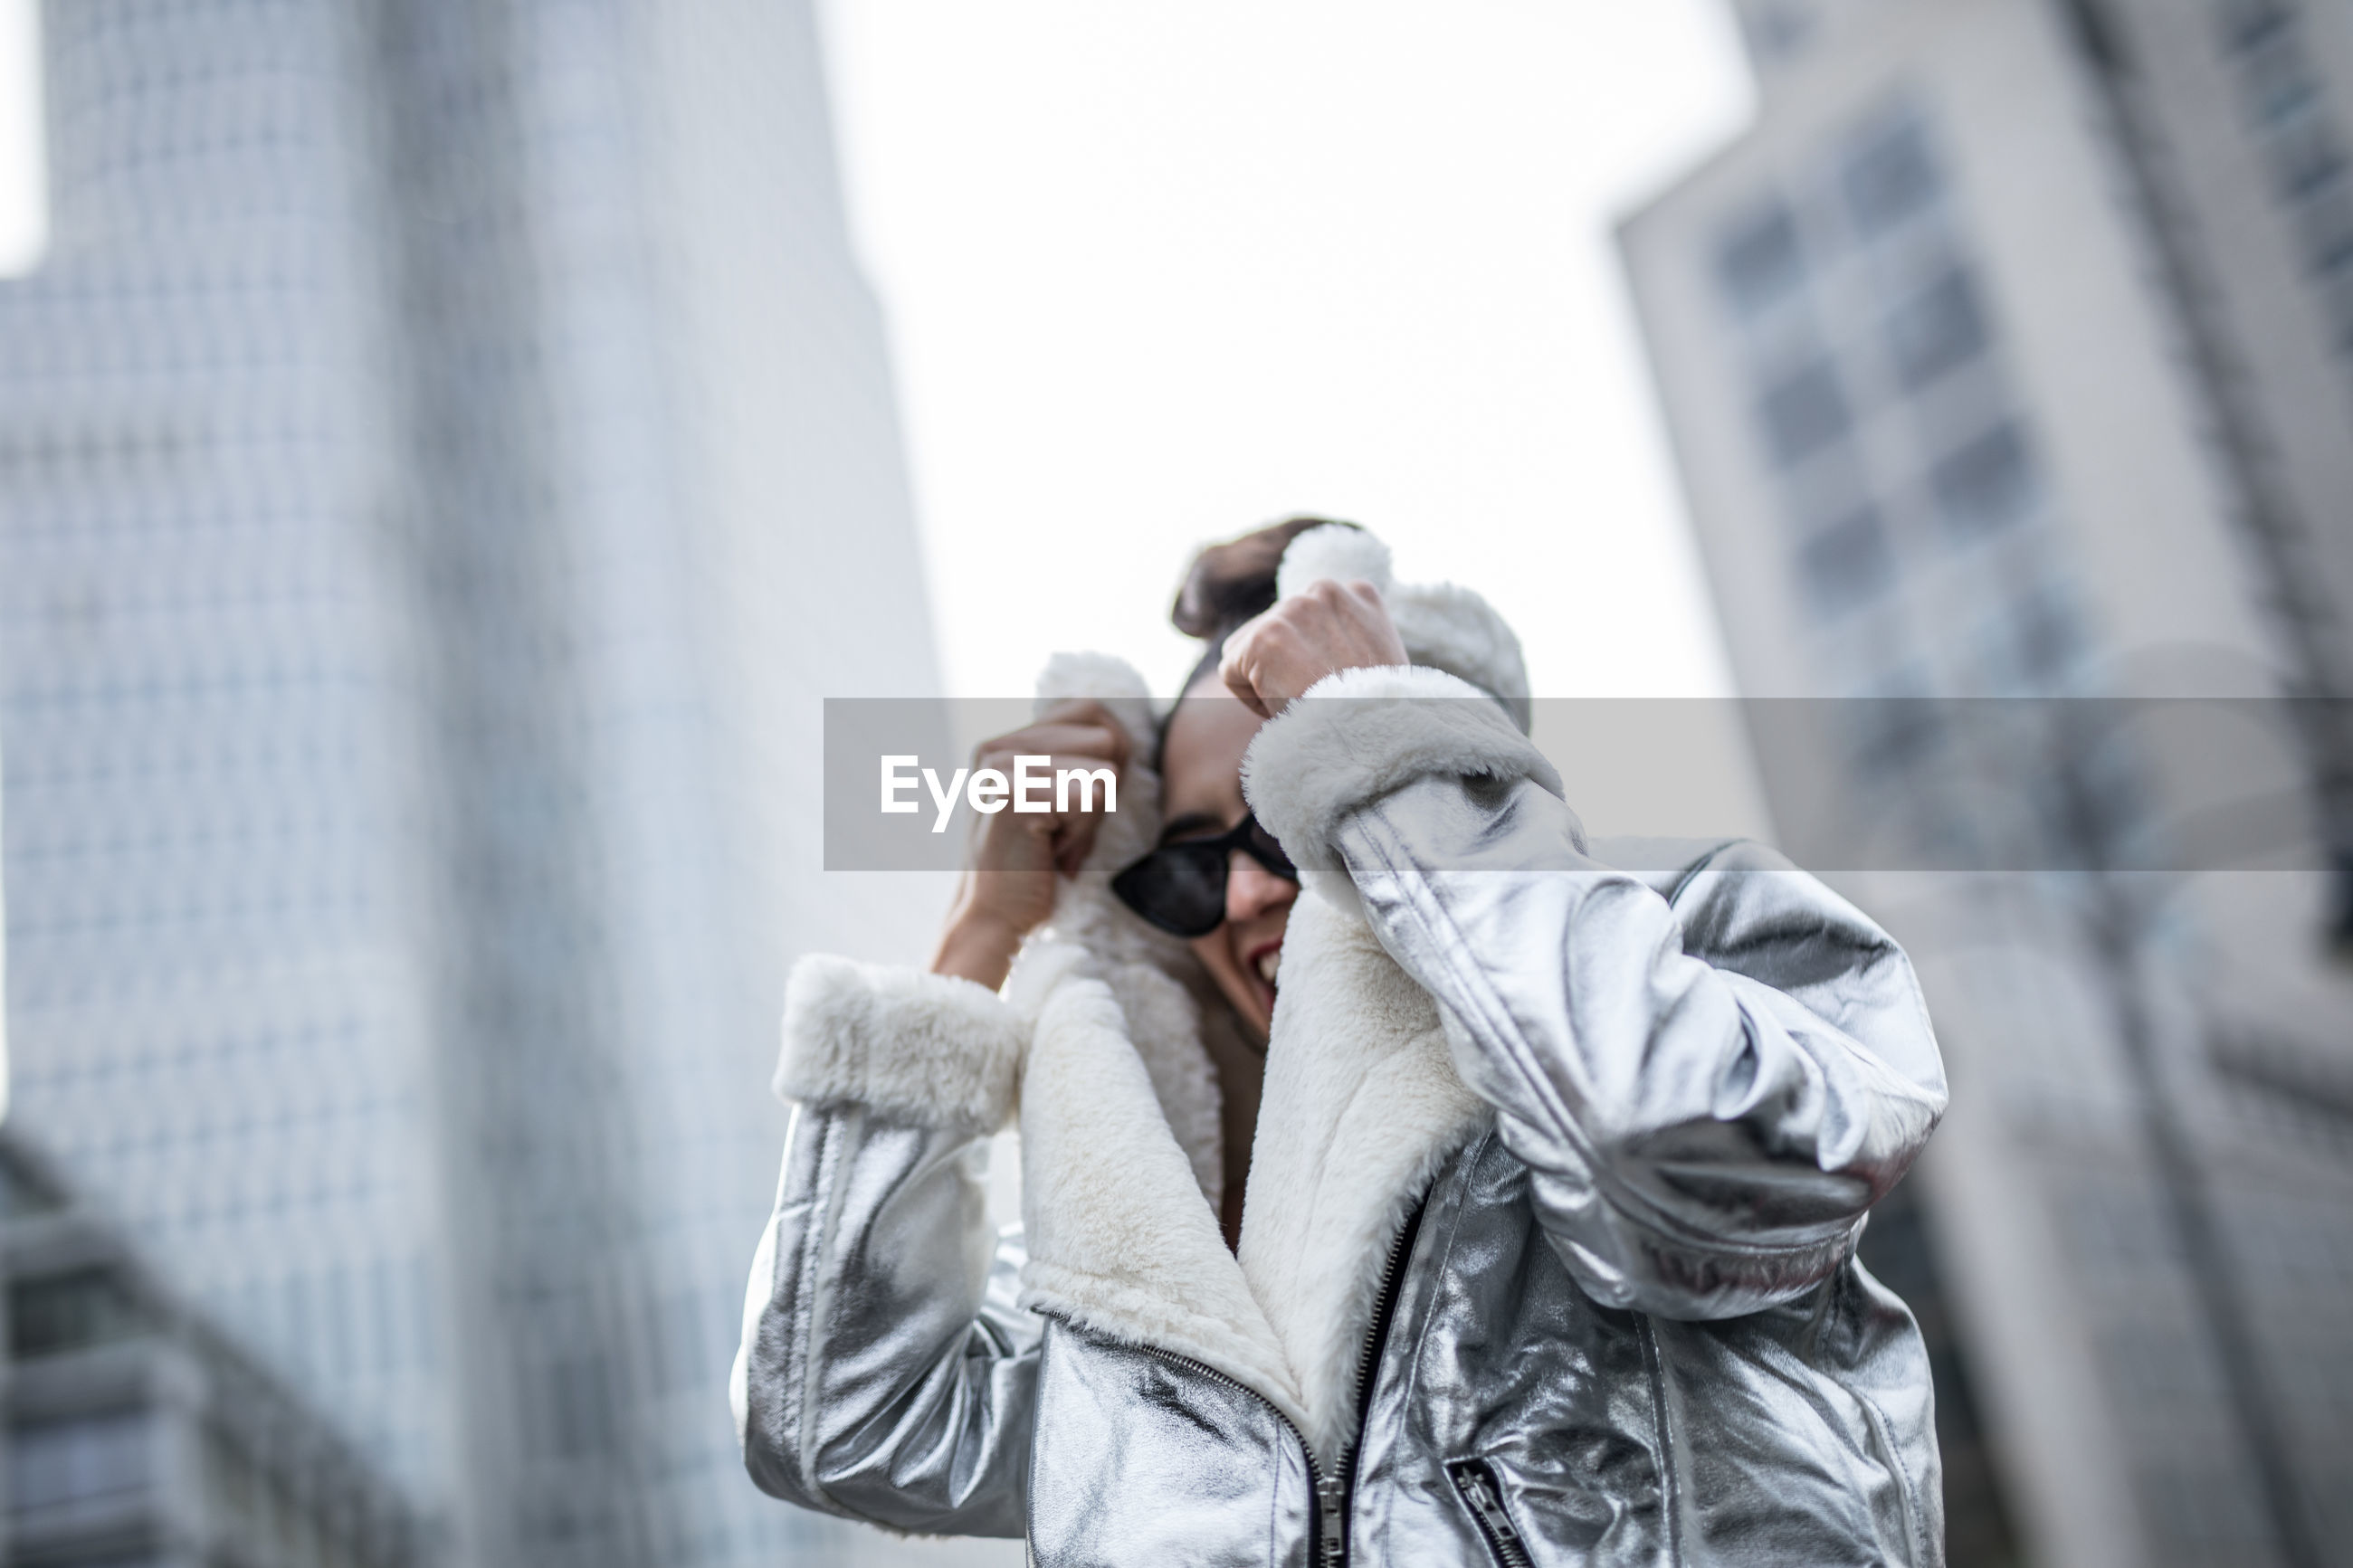 Low angle view of cheerful woman wearing warm clothing in city